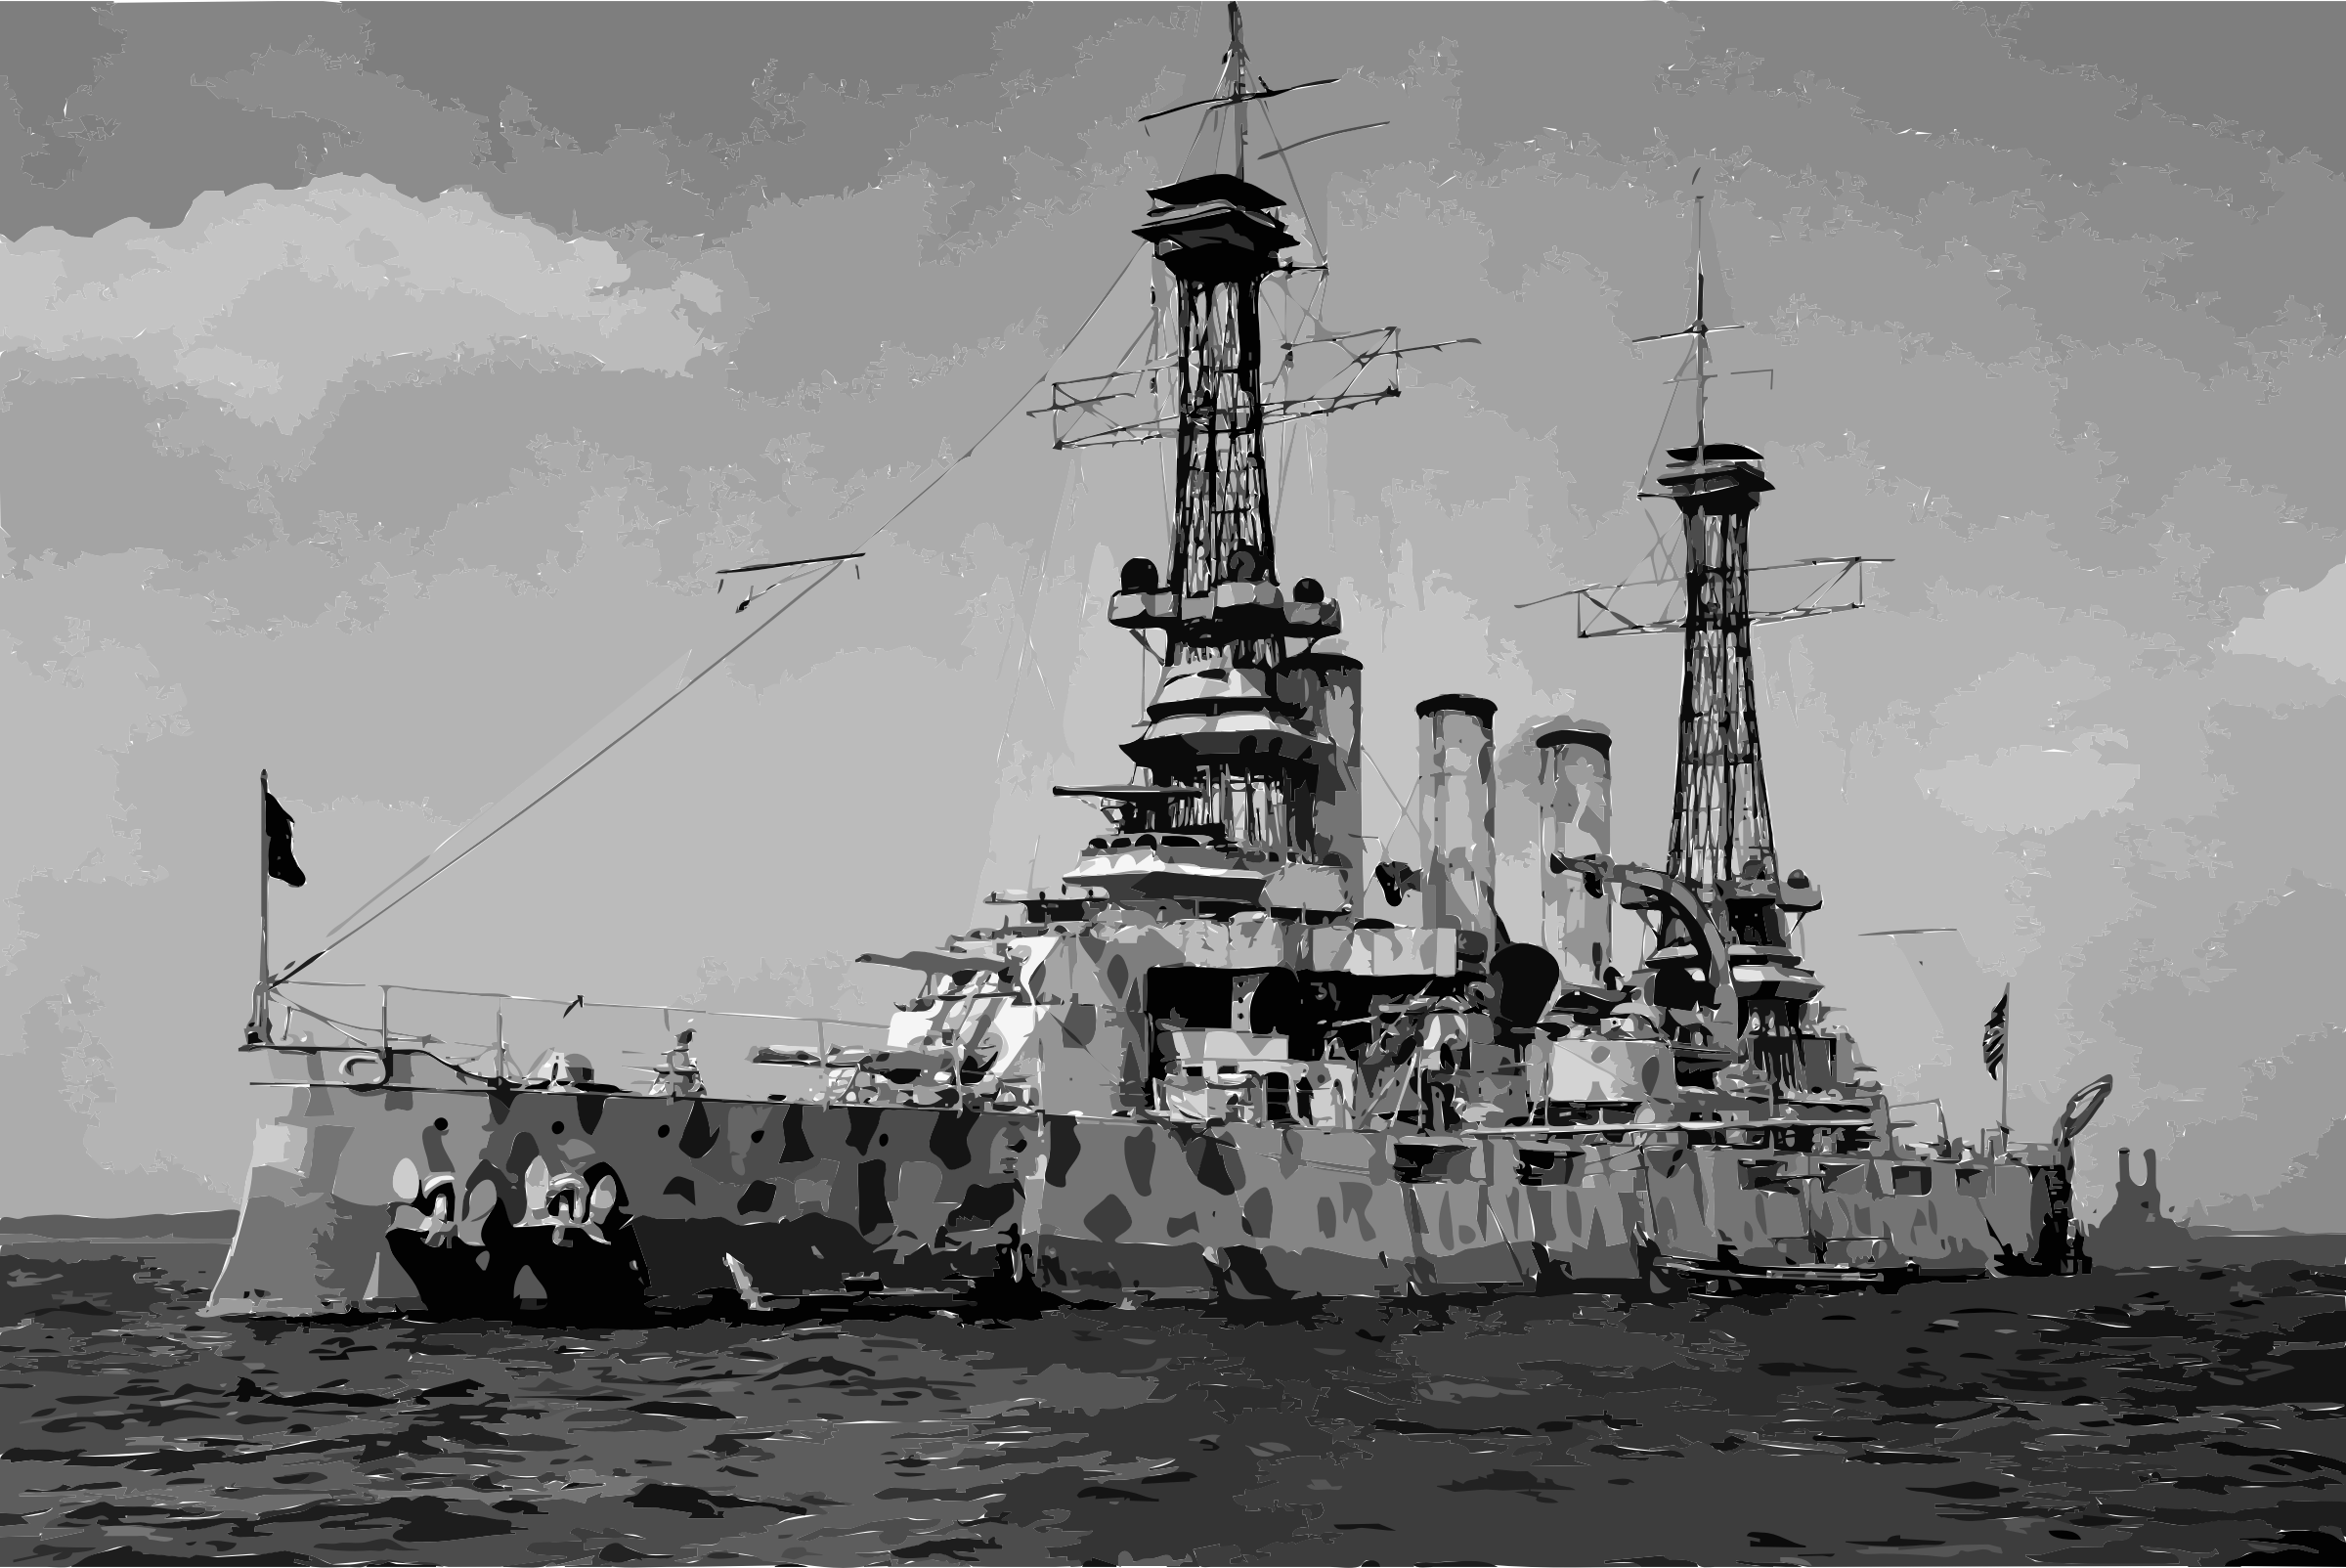 USS New Jersey (BB-16) in camouflage coat, 1918 edit by 3wftji+3tx2o9awq2oz0